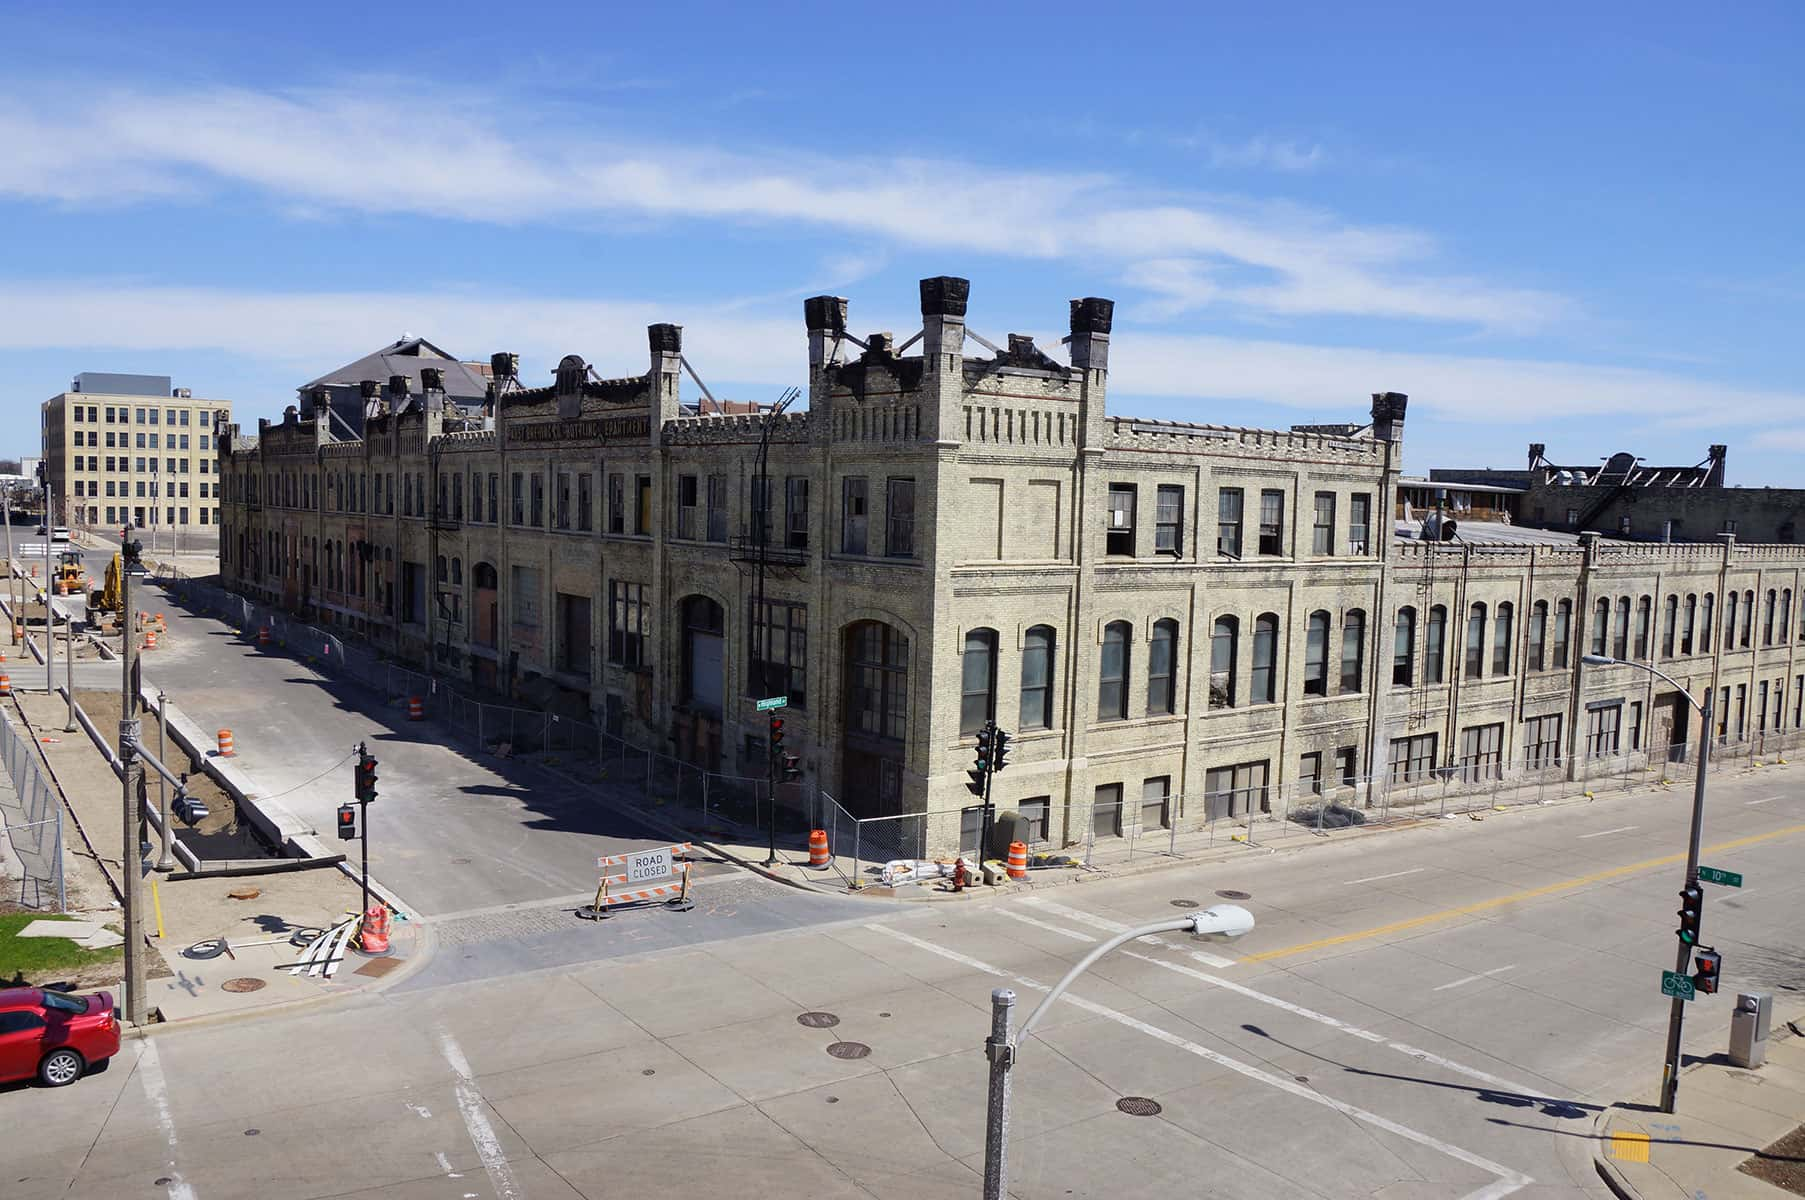 041815_Marquette_Lee_0776